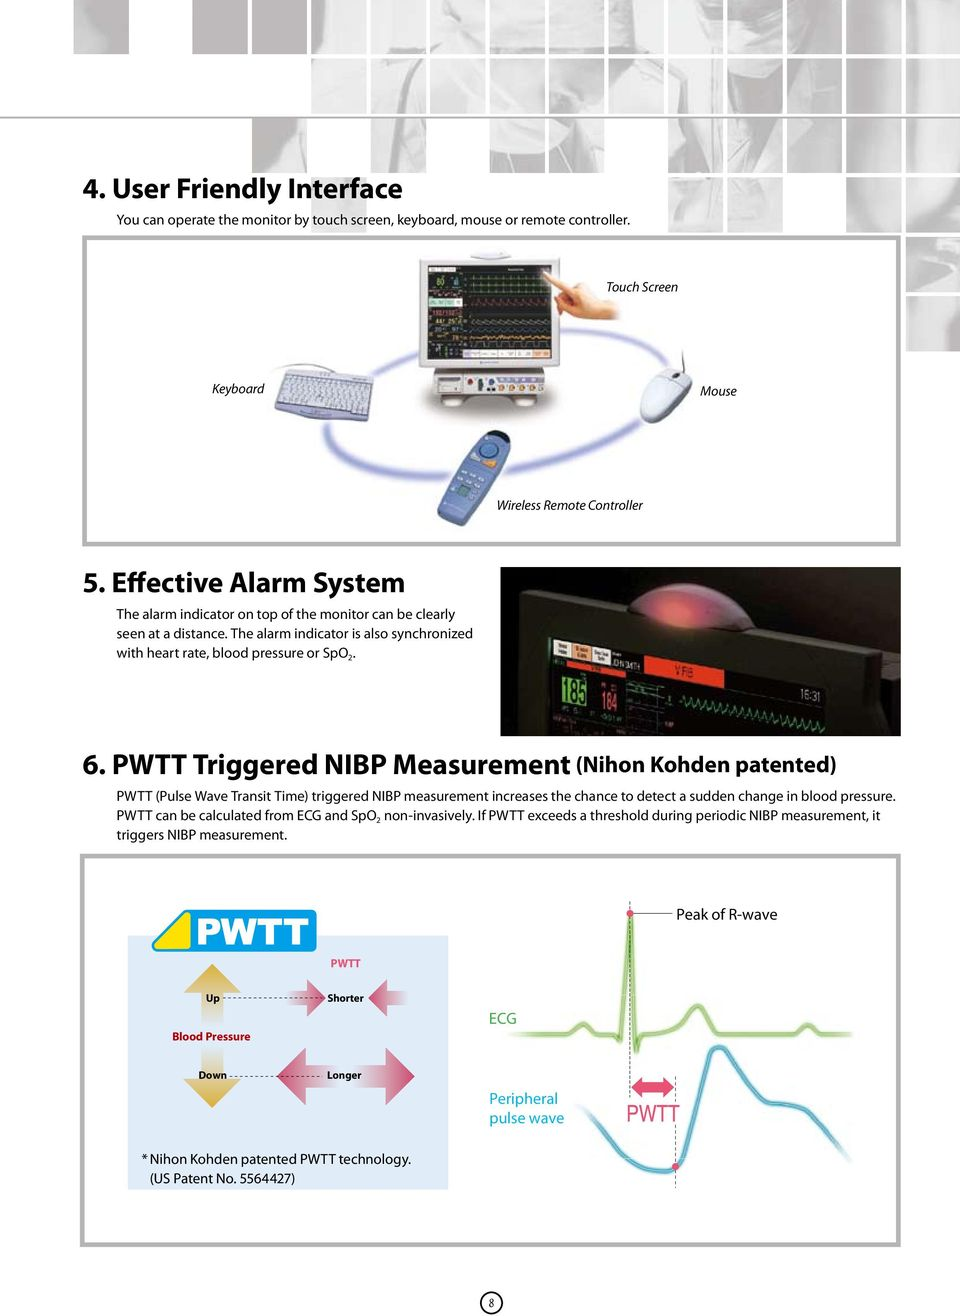 PWTT Triggered NIBP Measurement (Nihon Kohden patented) PWTT (Pulse Wave Transit Time) triggered NIBP measurement increases the chance to detect a sudden change in blood pressure.